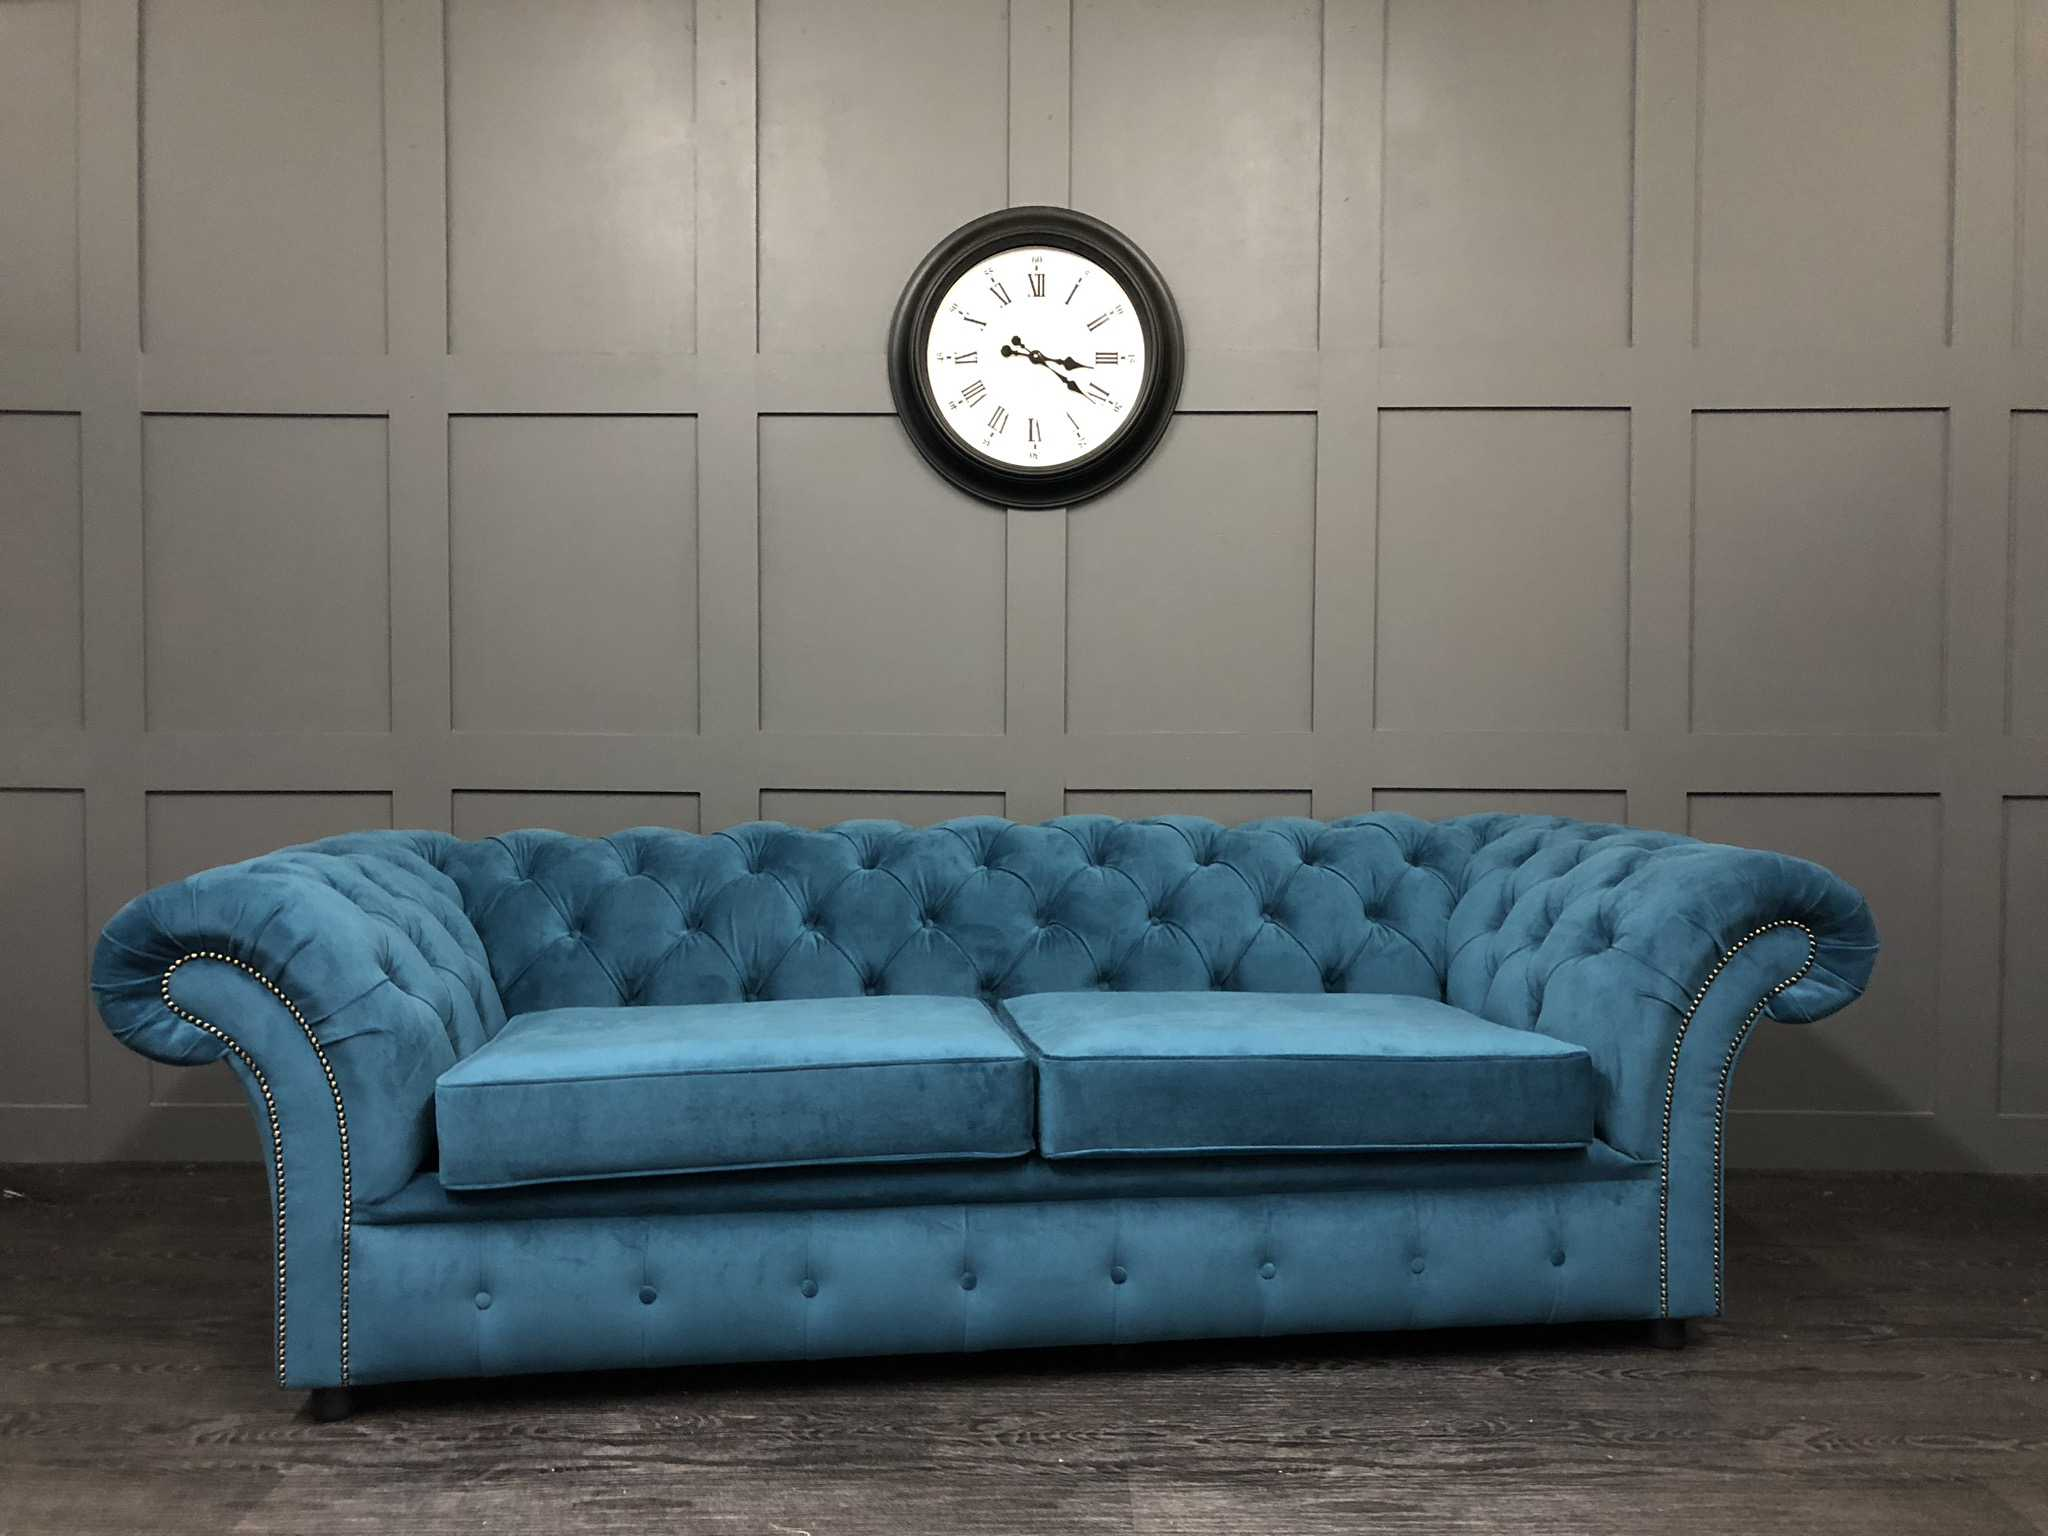 London chesterfield sofa bed in warwick plush velvet mallard